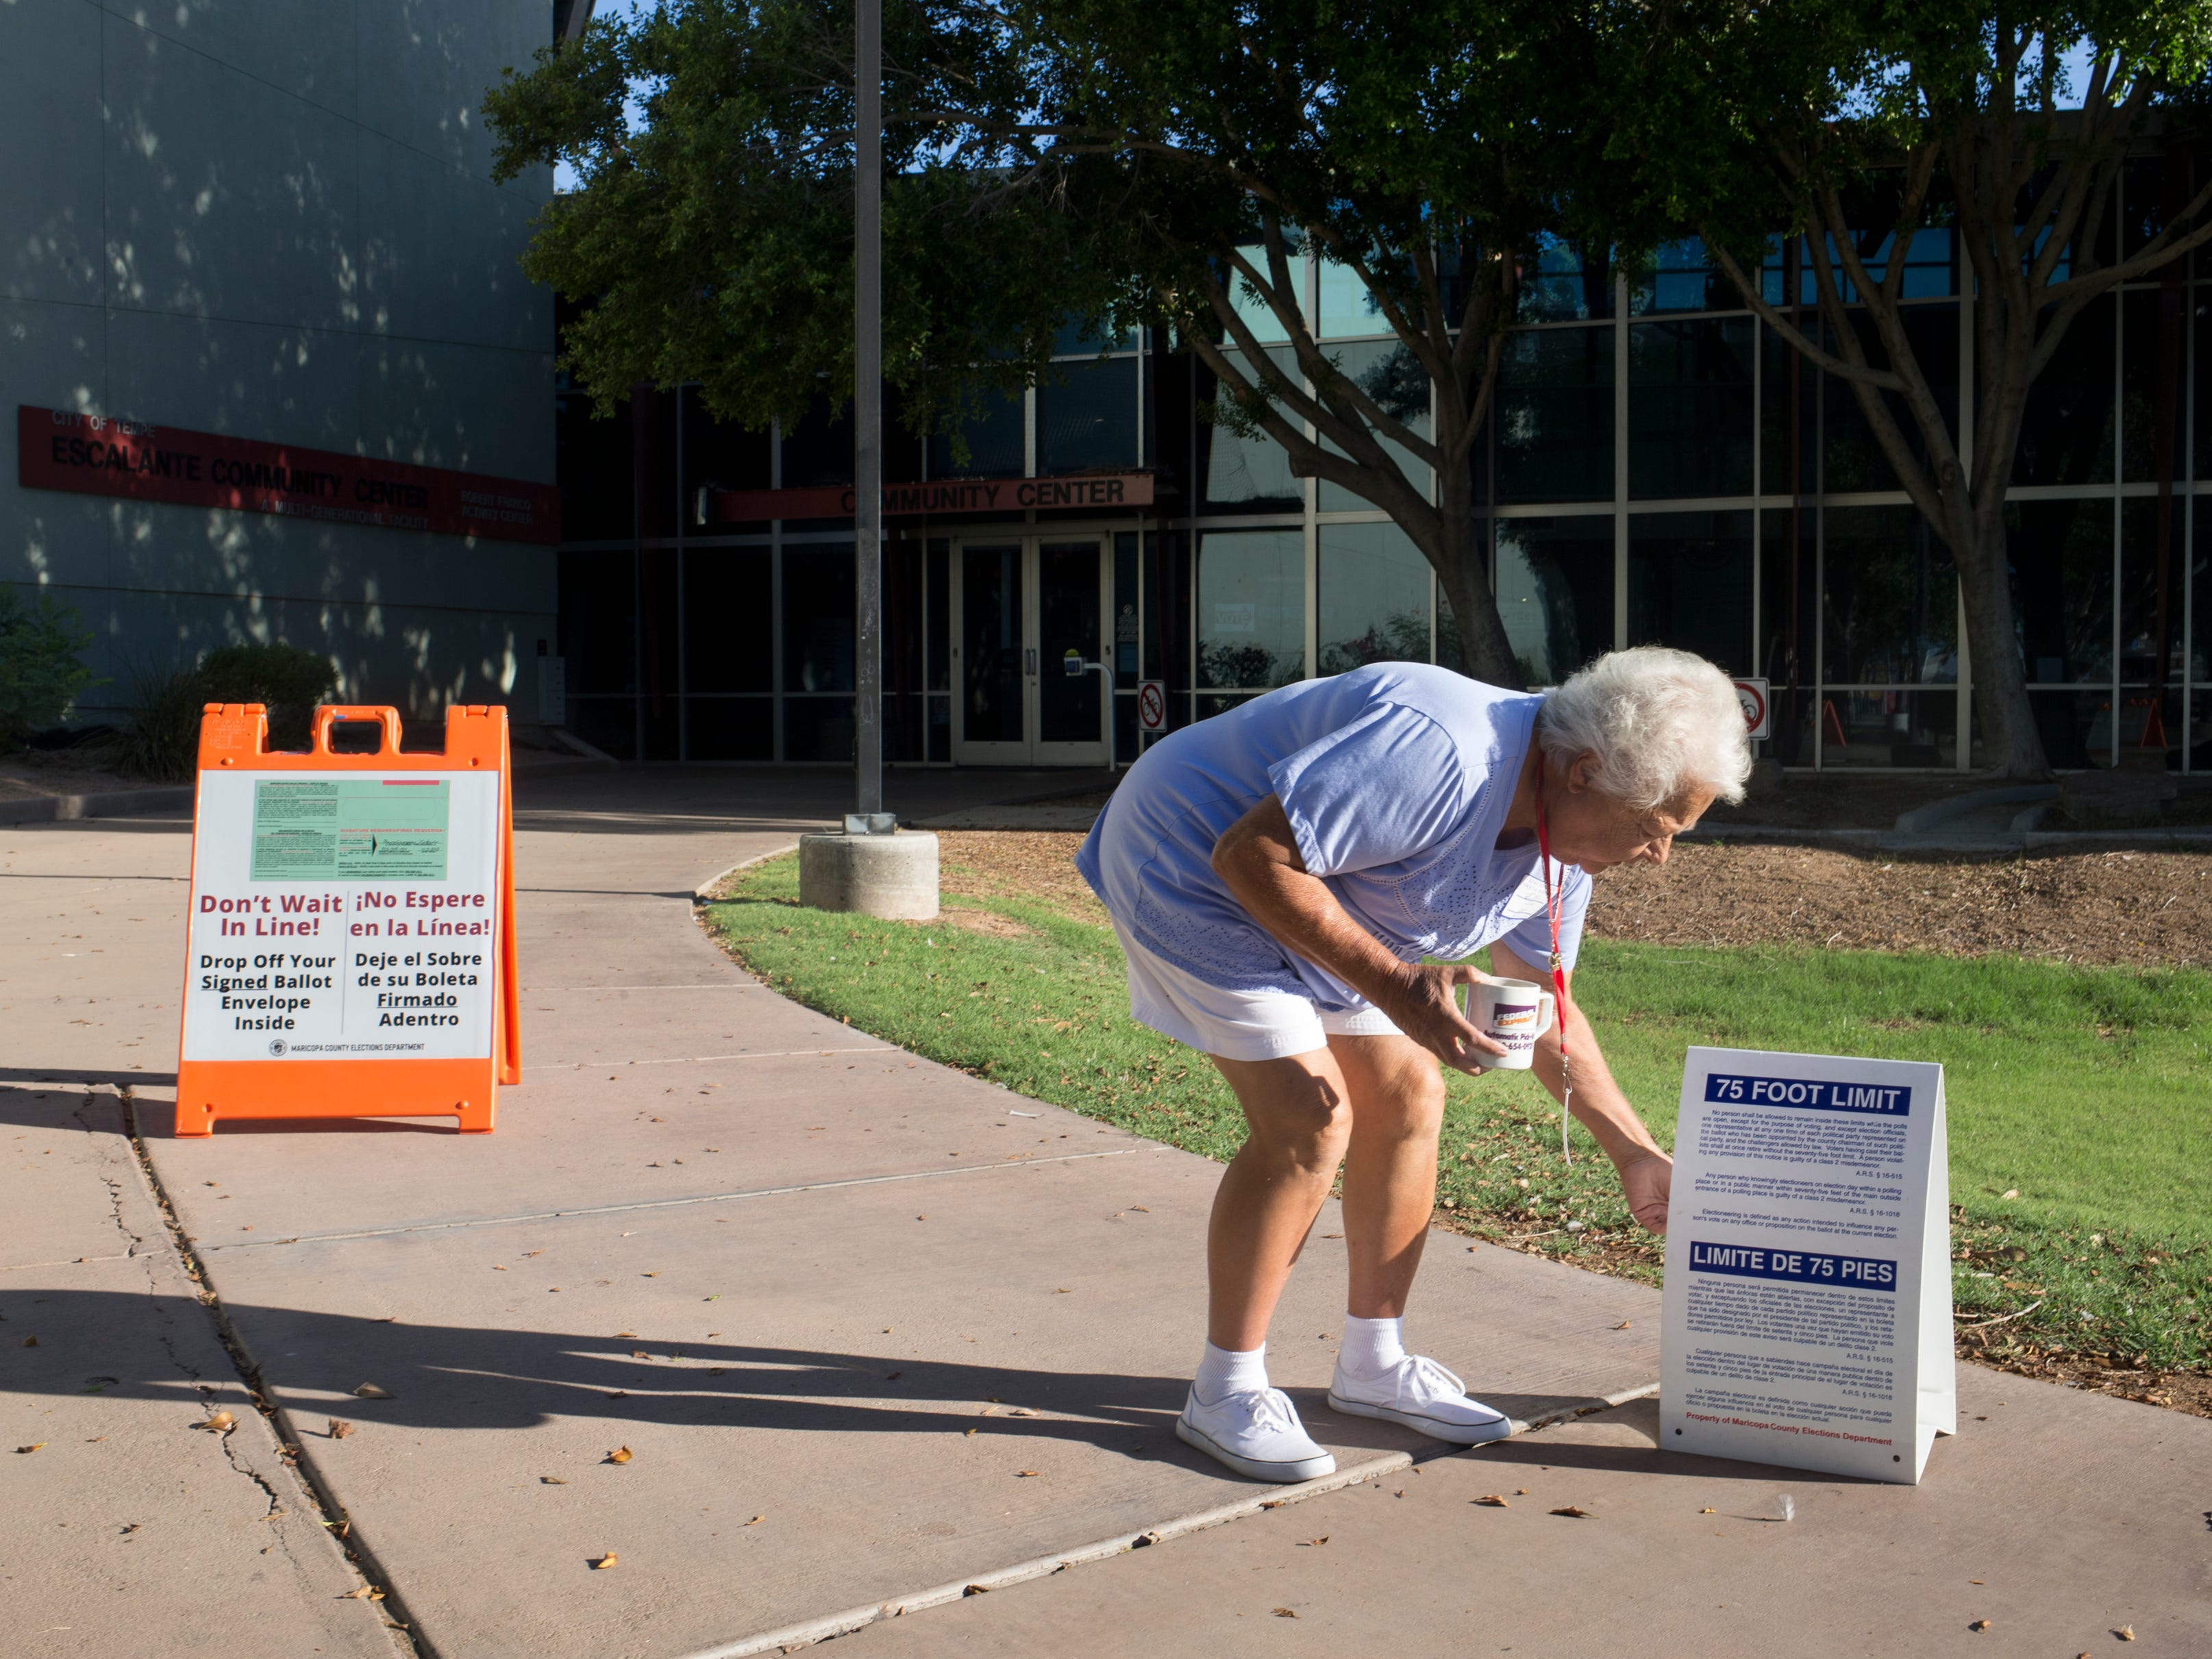 Bobbi Fredrikson, a co-inspector, sets up a voting sign, Aug. 28, 2018, at the Escalante Community Center polling place, 2150 E. Orange Street in Tempe.